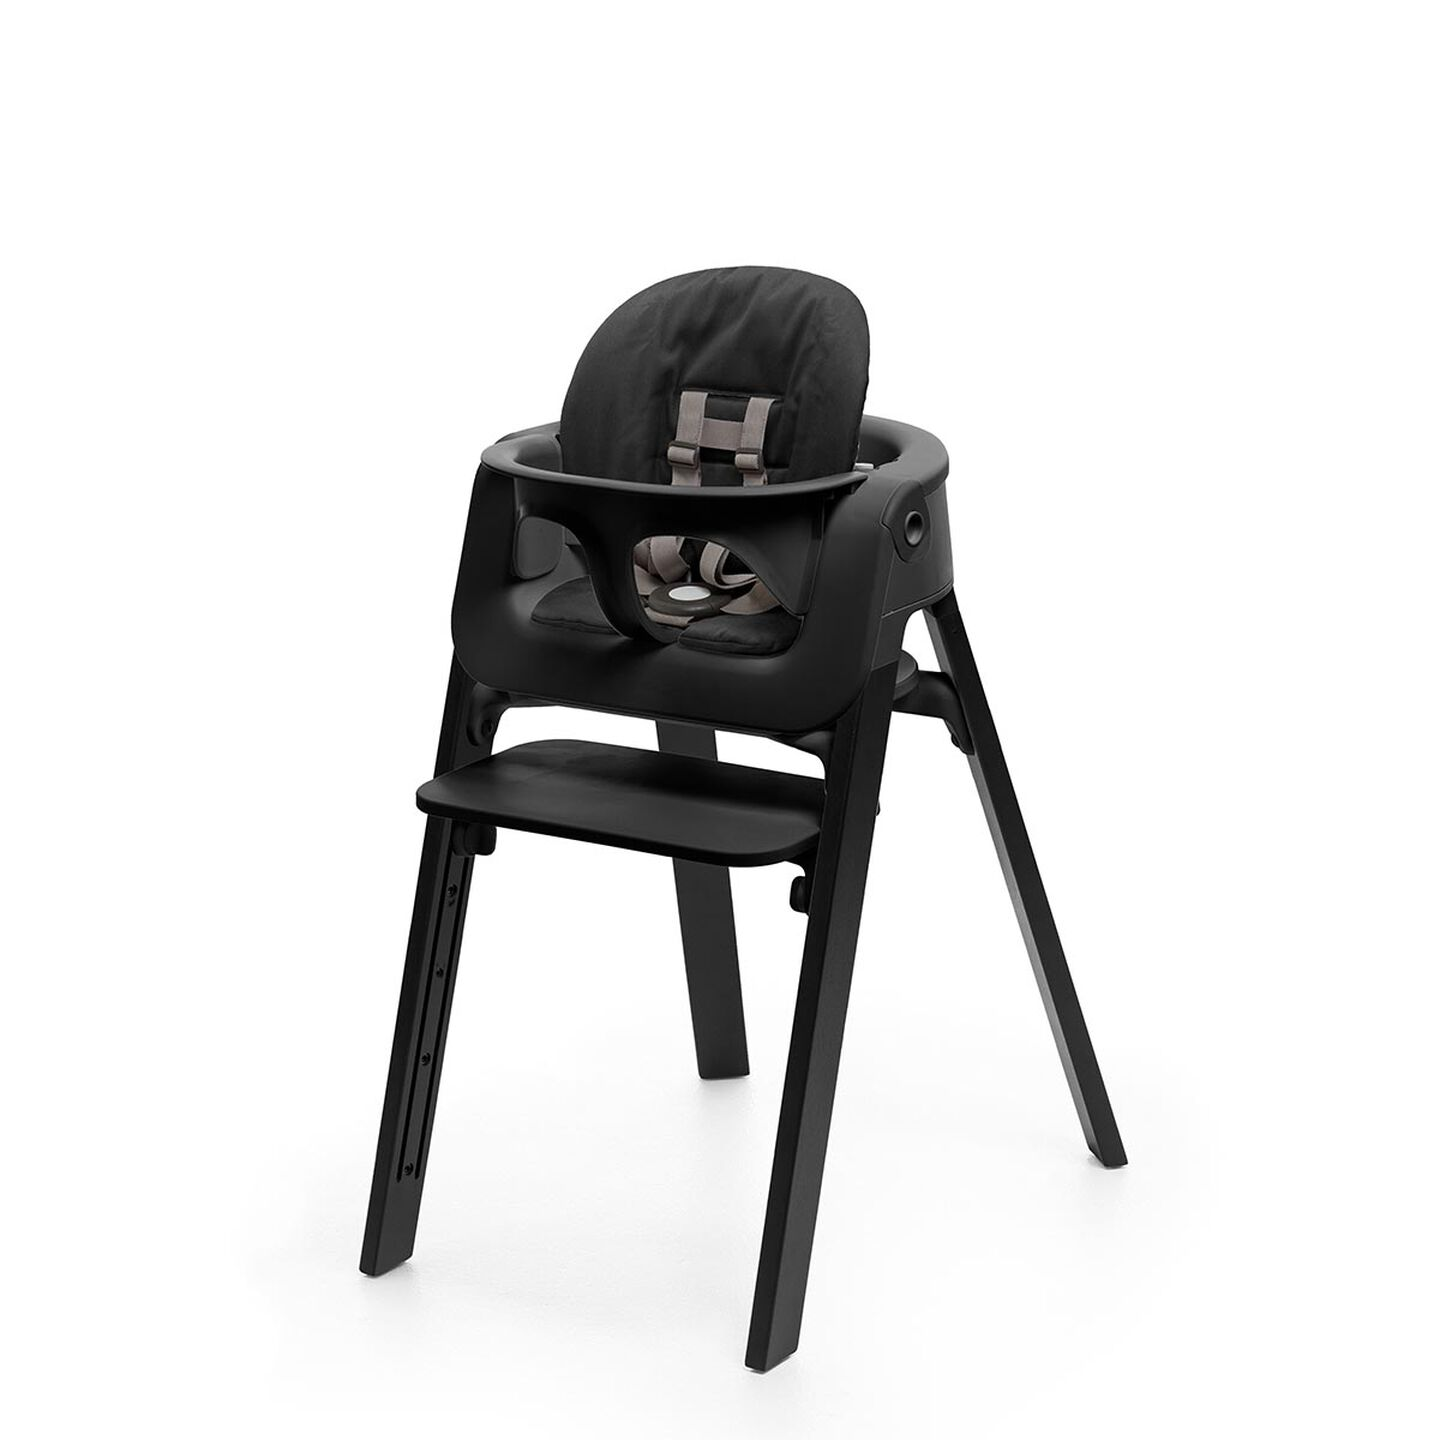 Stokke® Steps™ Baby Set Cushion Black, Noir, mainview view 2